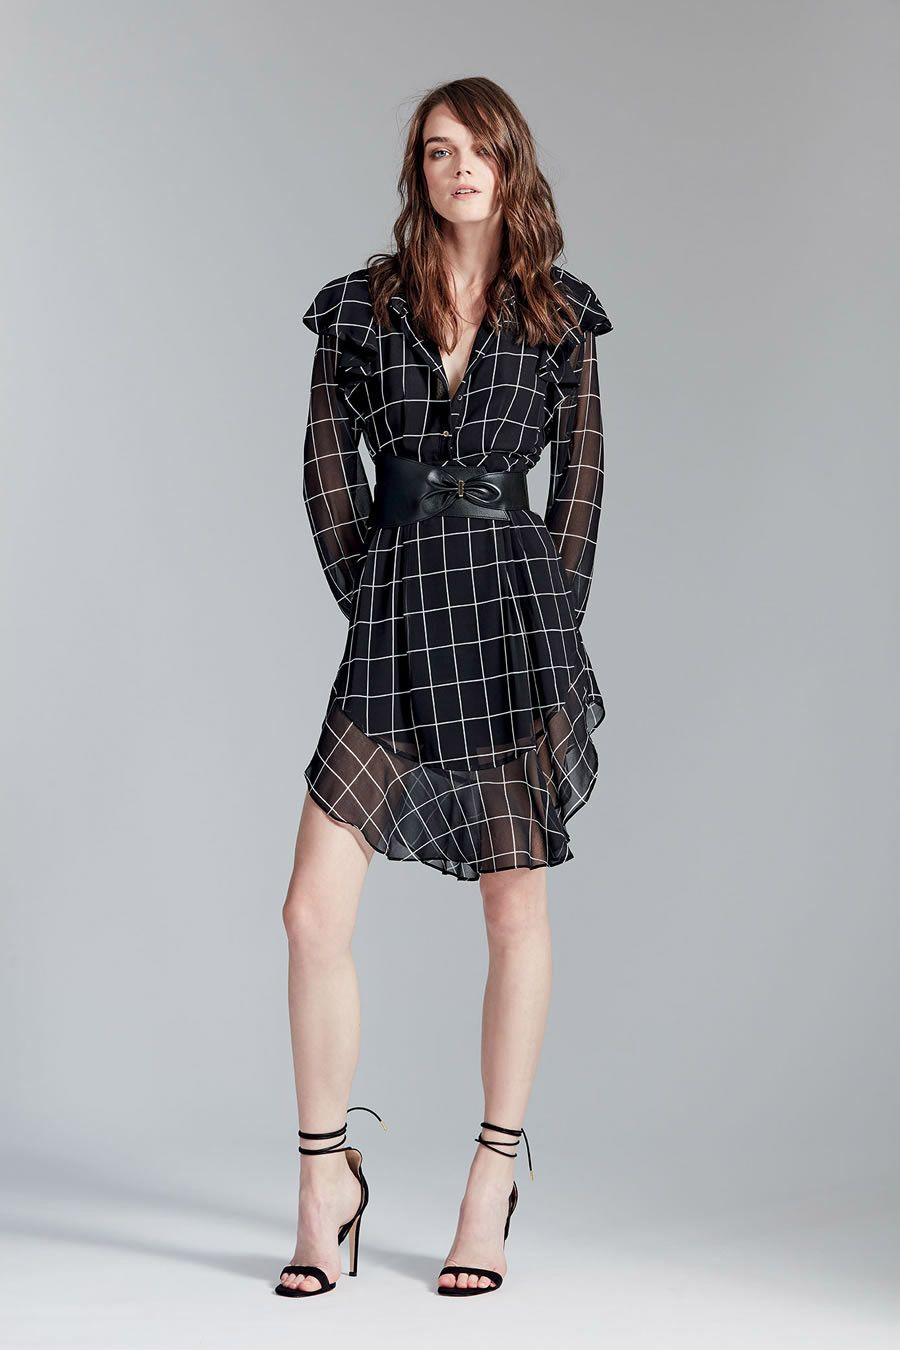 8f4c4b4beed2d Modell Isabella Andersson ANNARITA N Shop Online  collezione donna ...